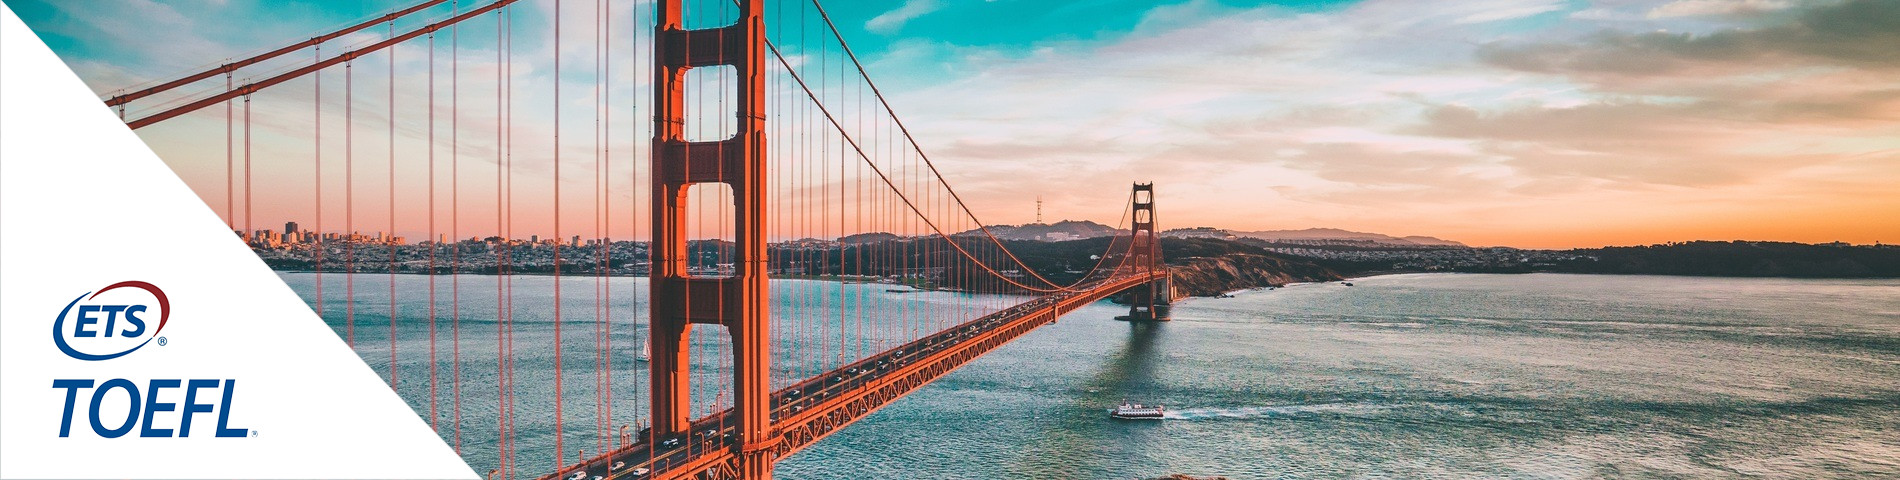 San Francisco - TOEFL